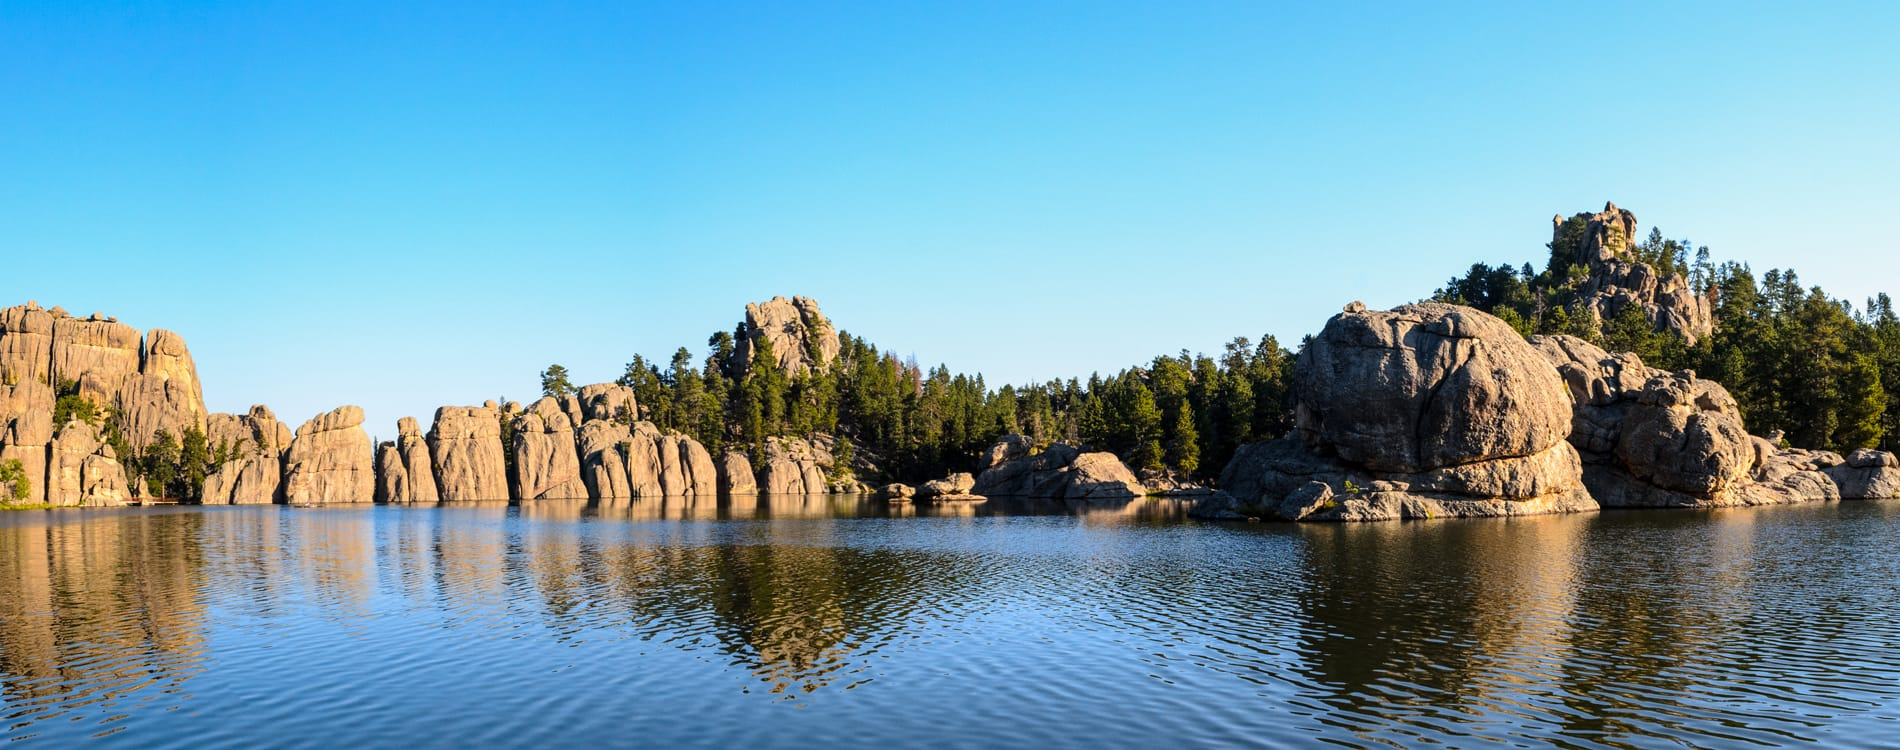 Black Hills - Sylvan Lake and Custer State Park